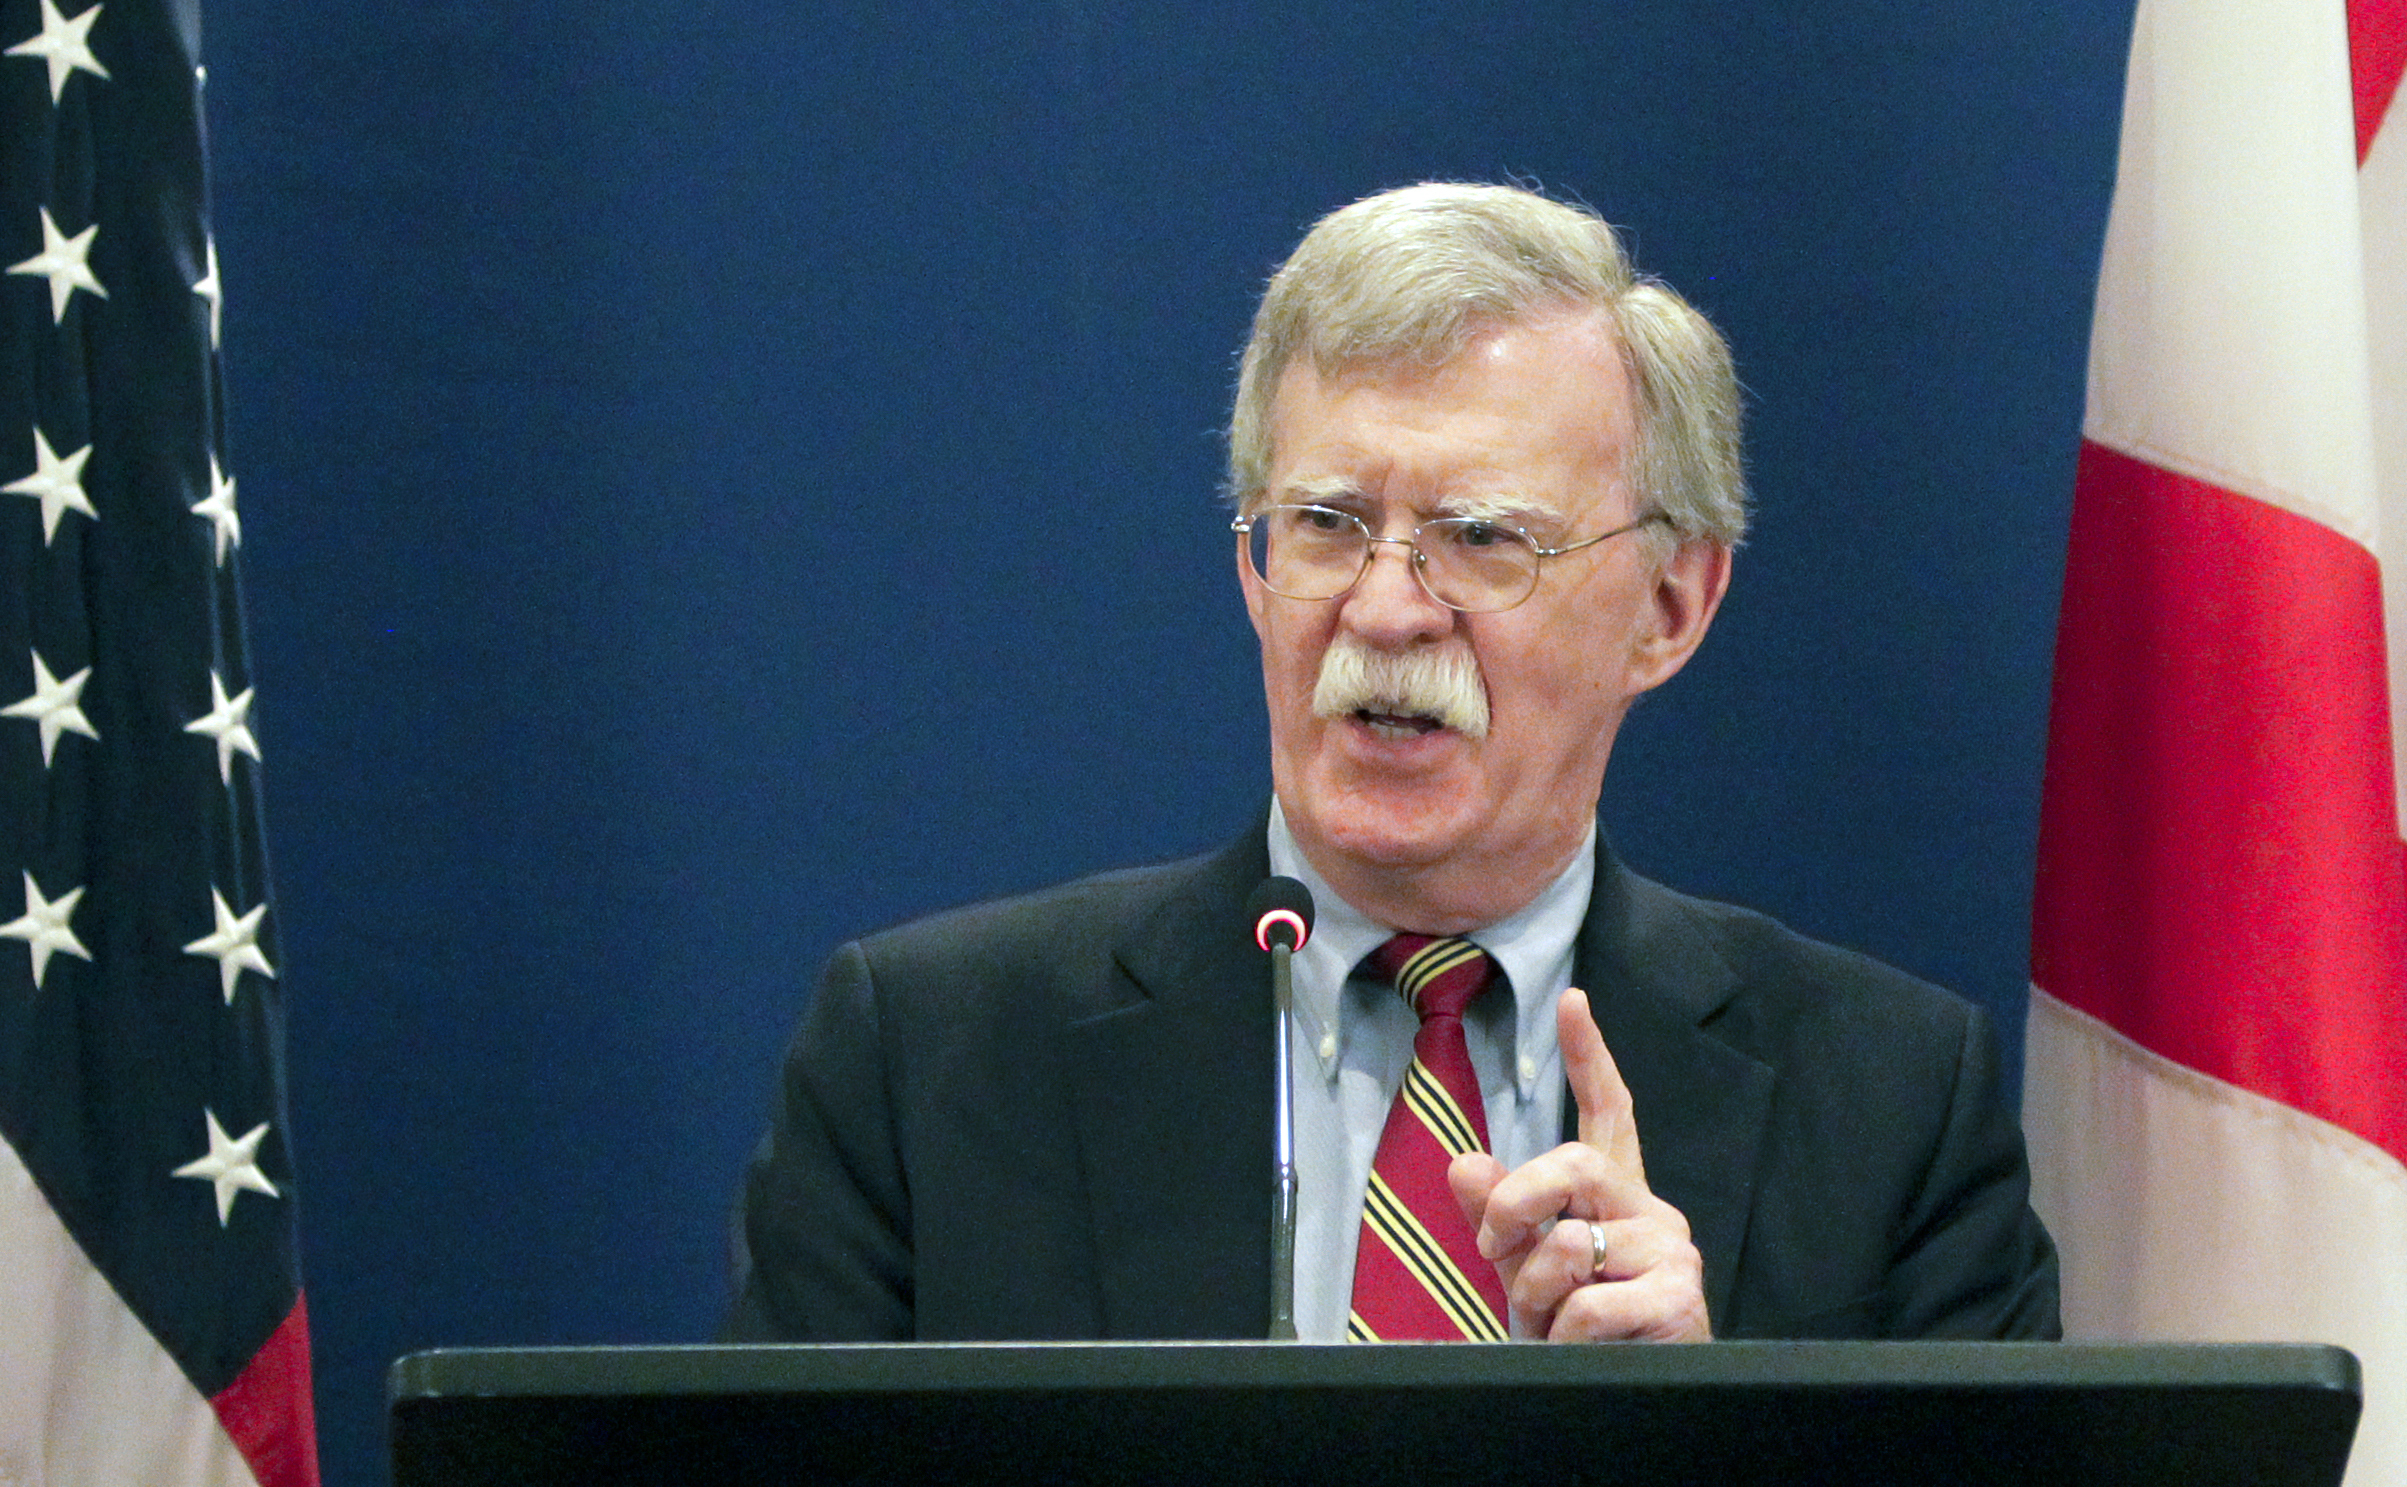 U.S. National security adviser John Bolton gestures while speaking to the media during a news briefing following his meetings with Georgian officials in Tbilisi, Georgia, Oct. 26, 2018.